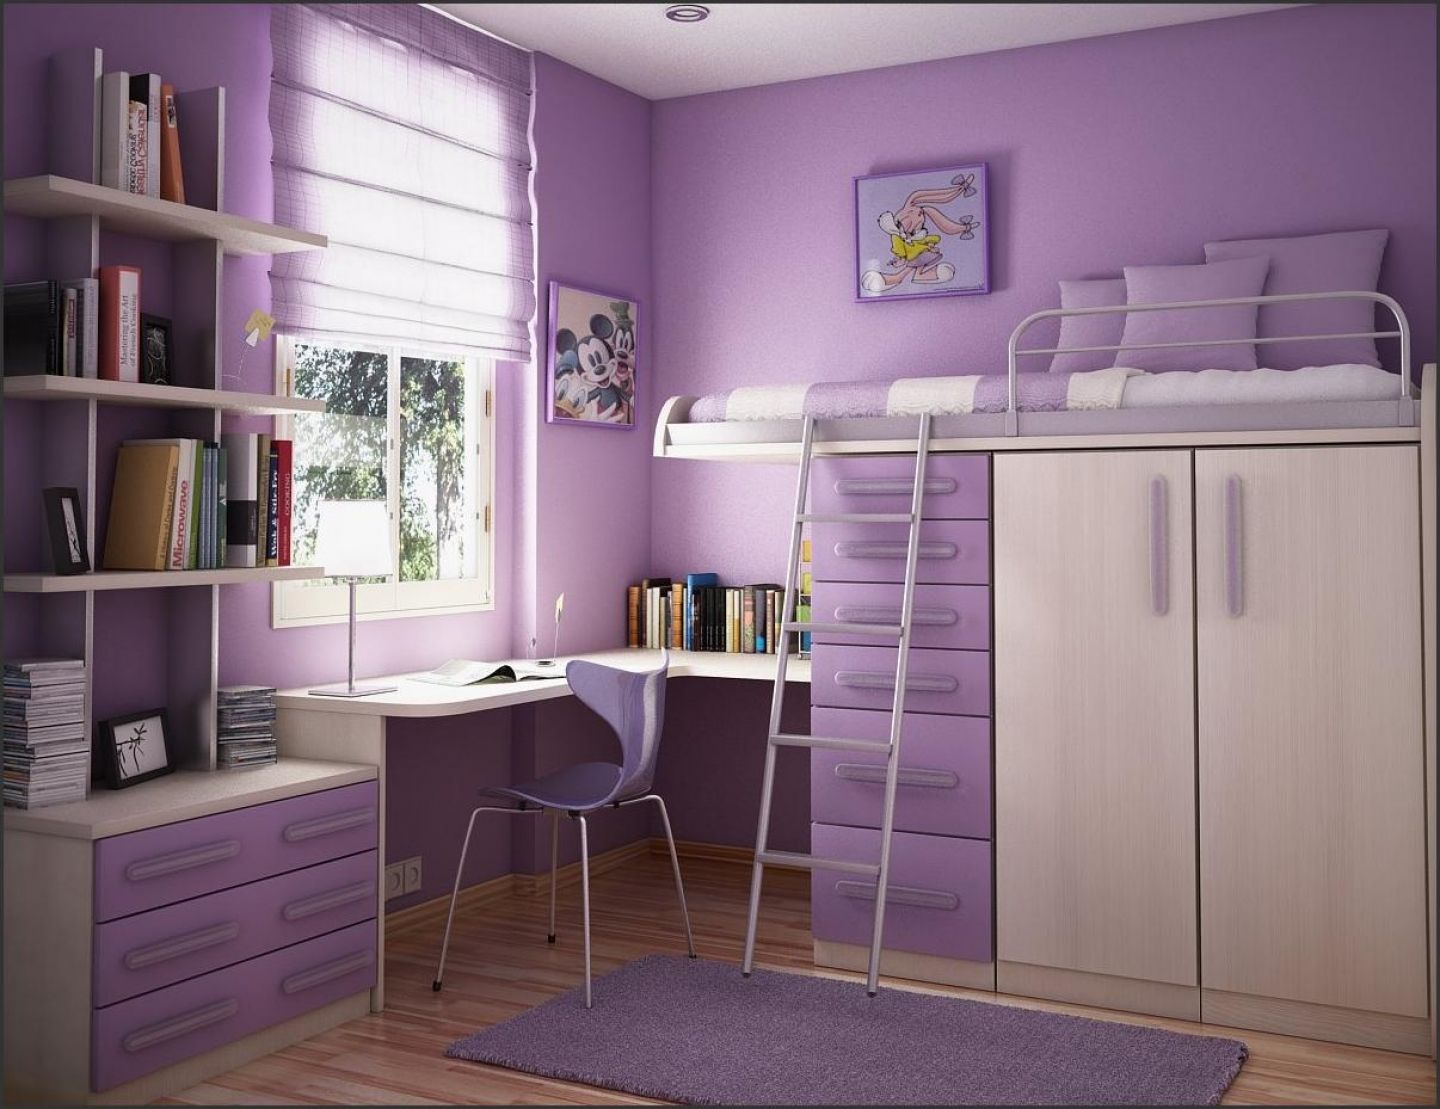 teen girl bedroom decorating ideas 06 13 1403 - Bedroom Ideas For Teens